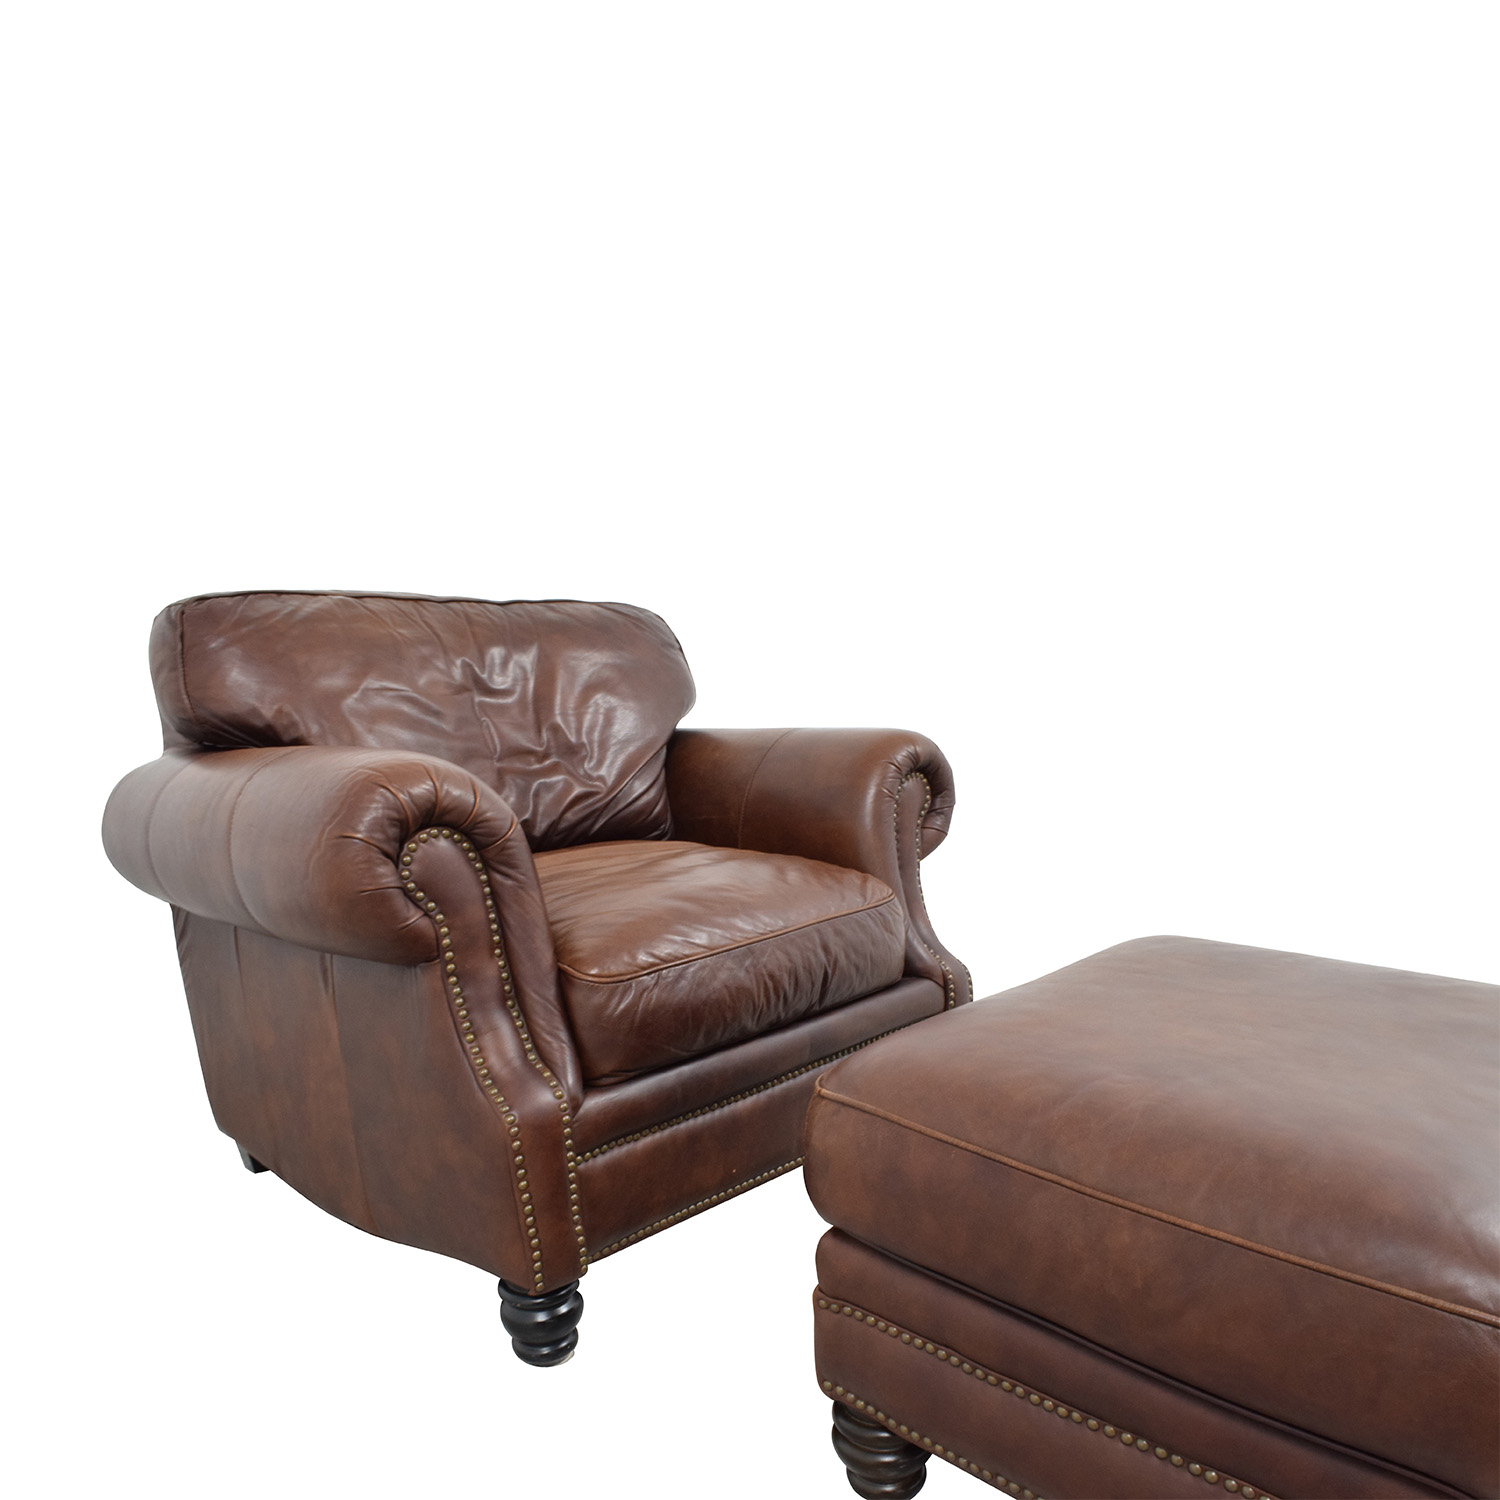 75 off brown leather studded armchair with matching for Brown leather couch with studs